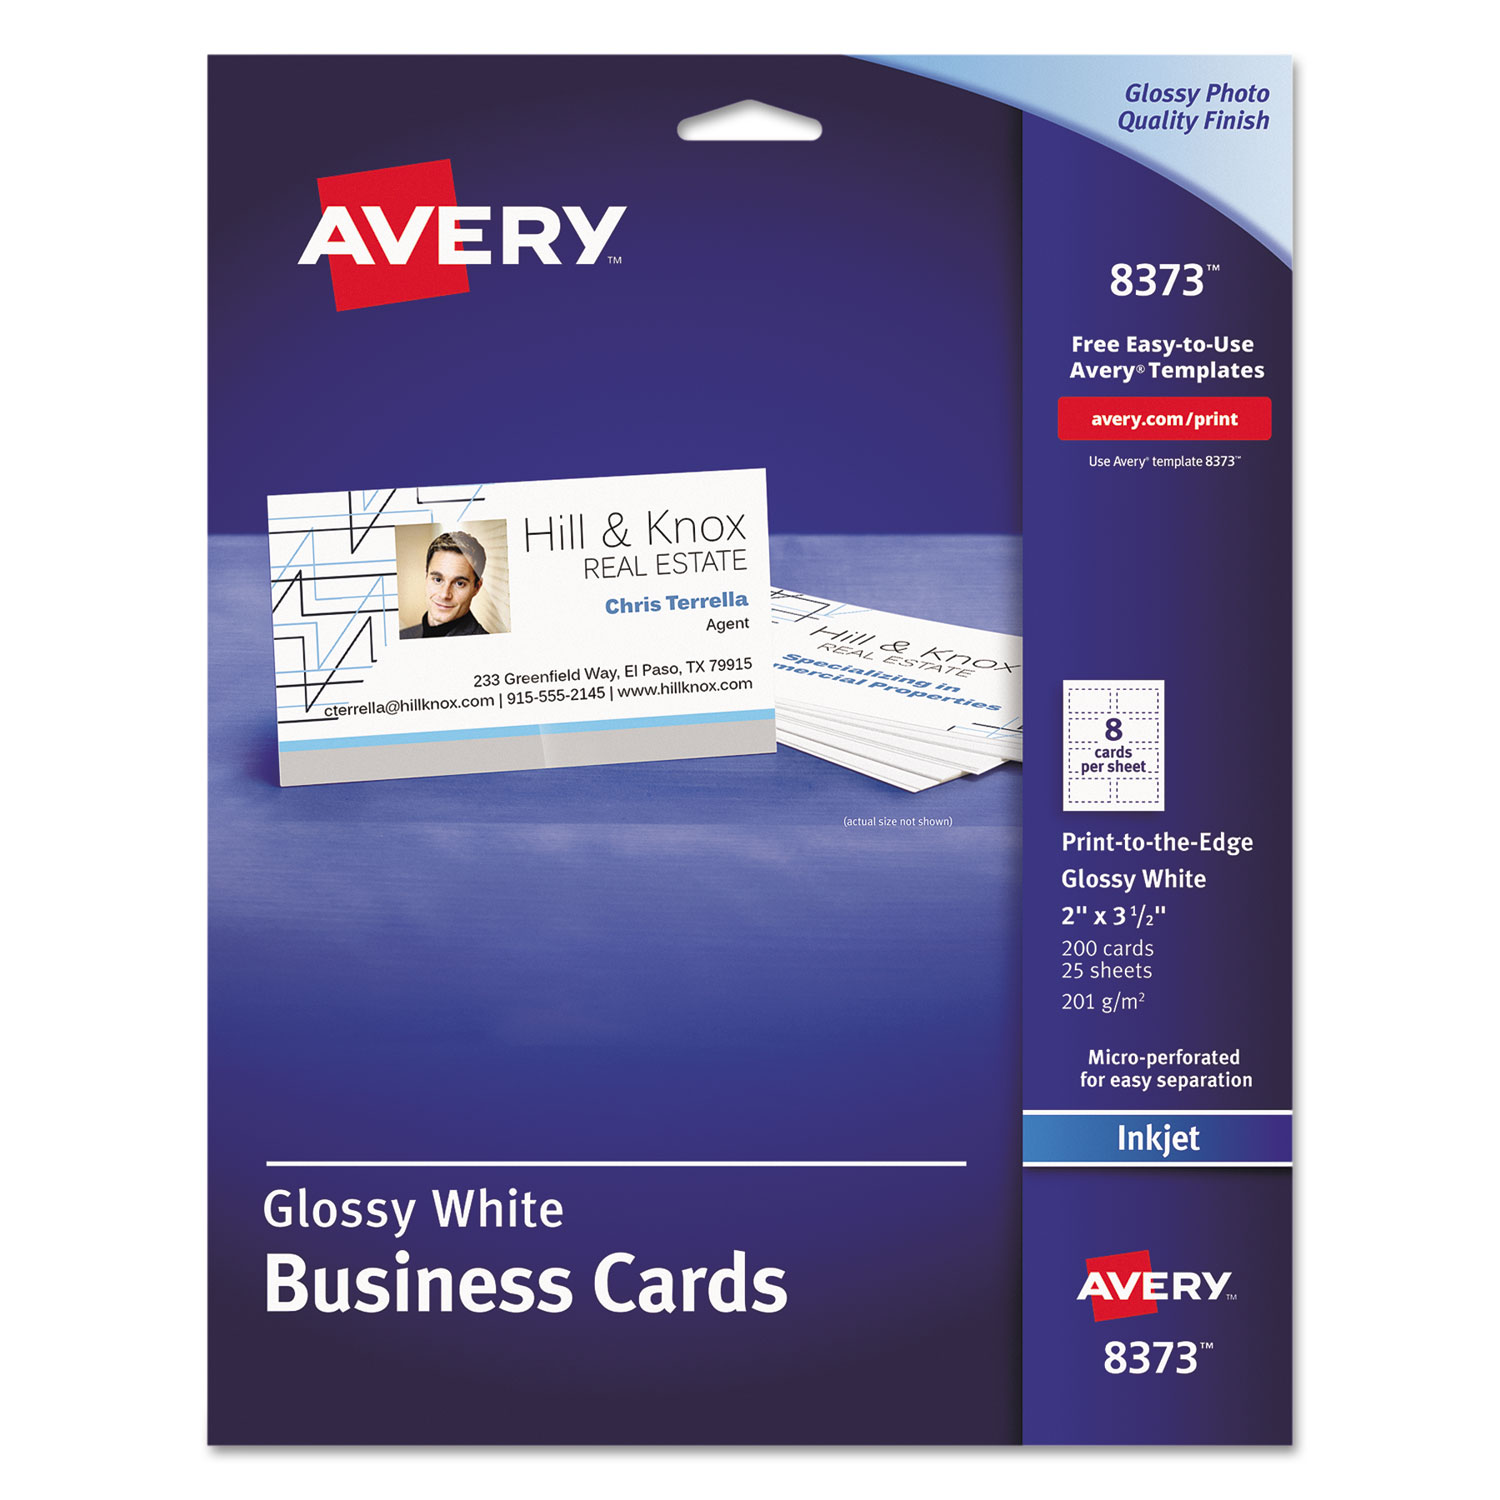 Print-to-the-Edge Microperf Business Cards by Avery® AVE8373 ...